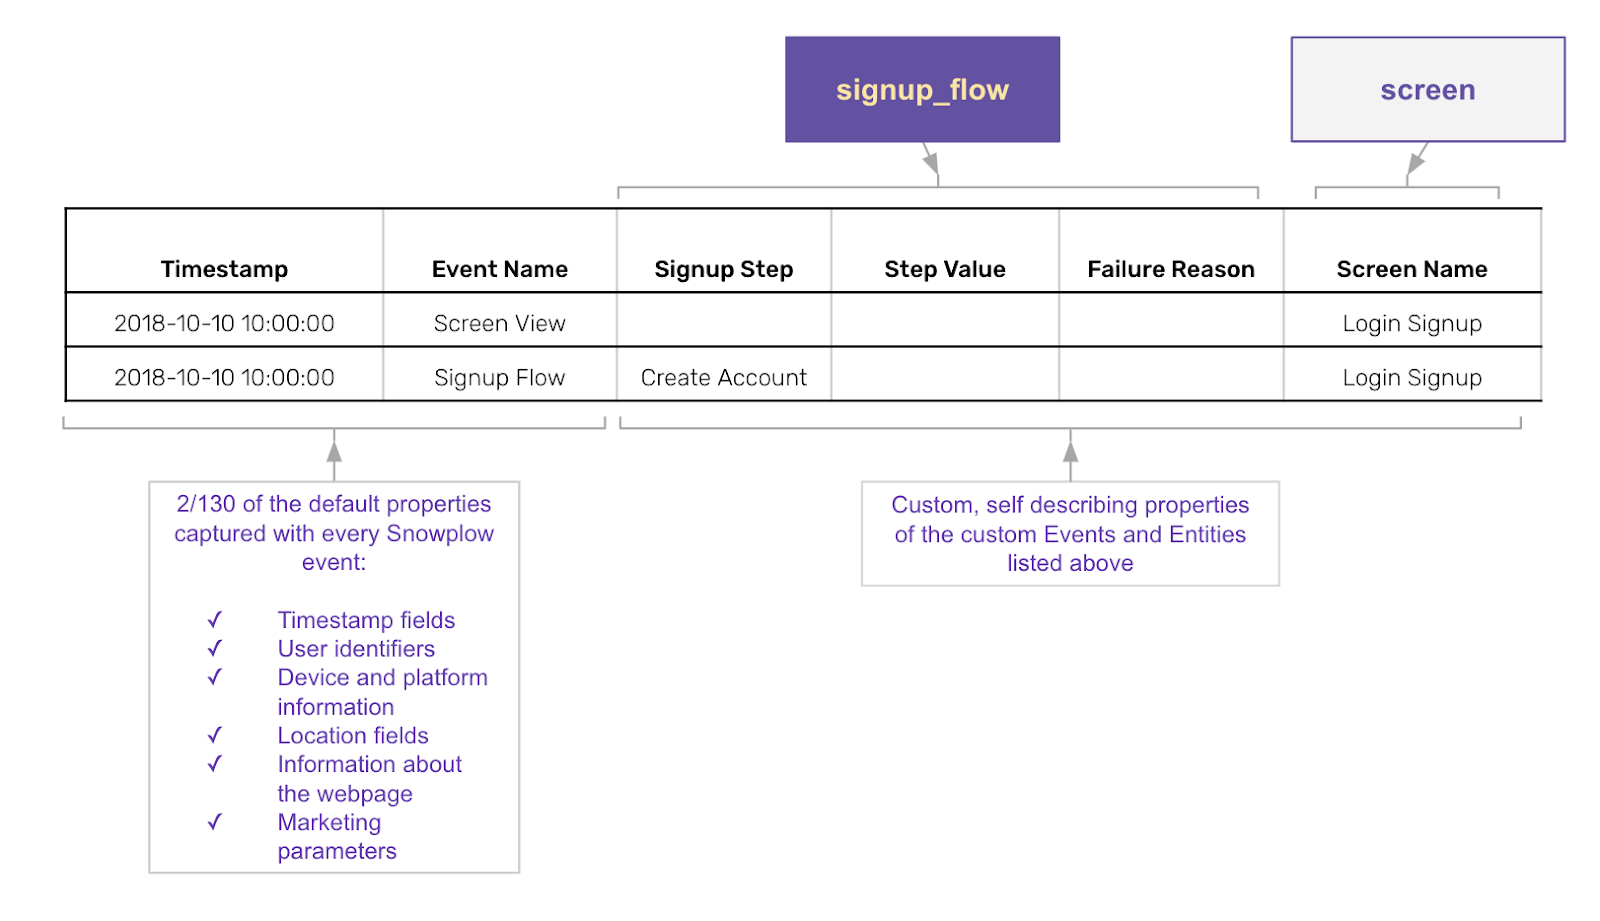 A table of the signup flow